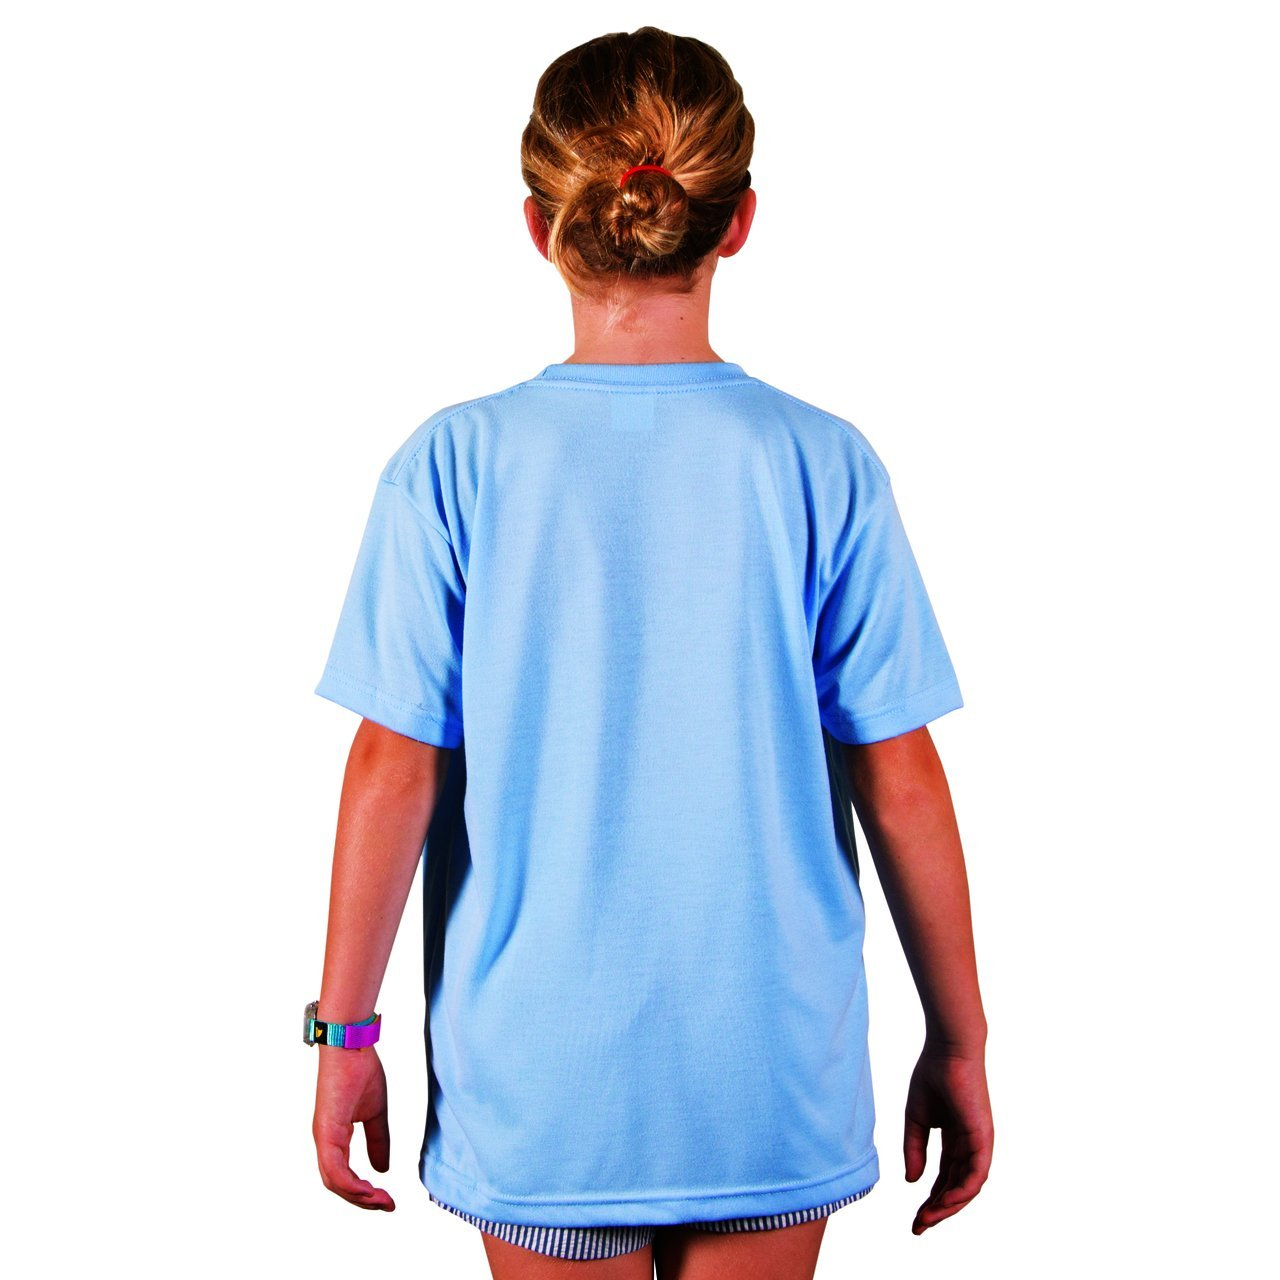 A3SJBBBZ Youth Basic Performance T-Shirt - Blizzard Blue